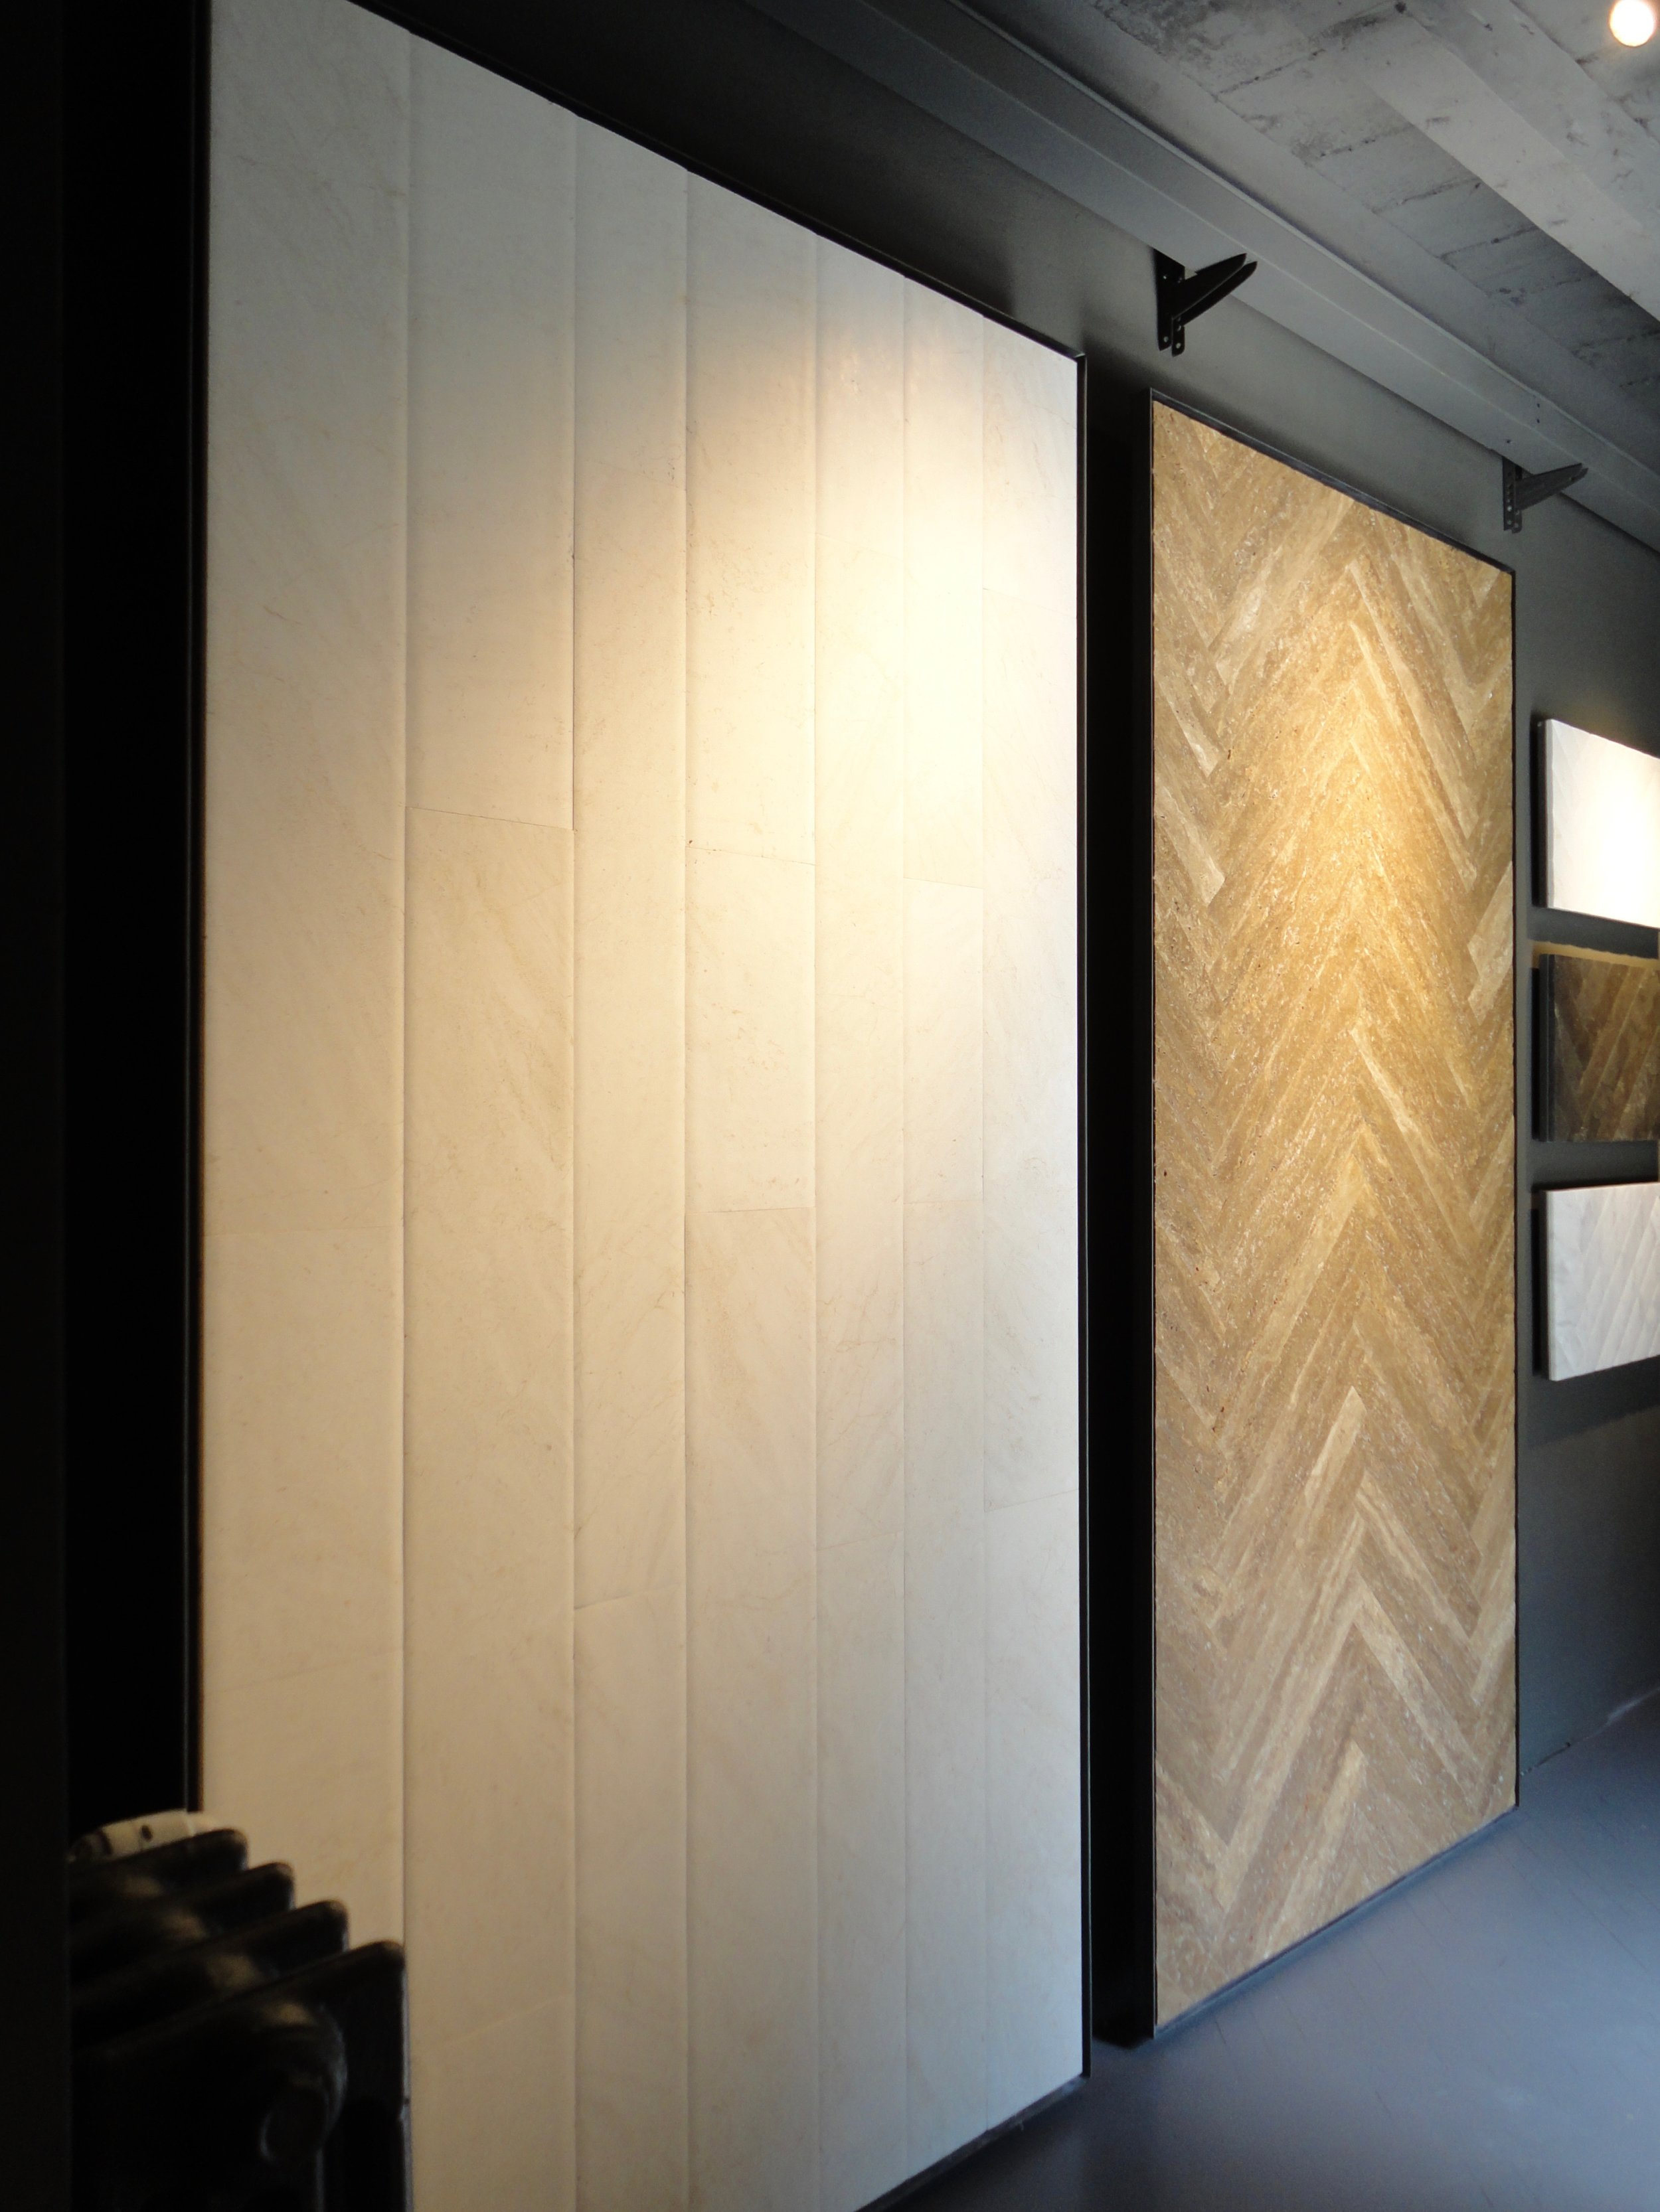 The new 'Stone Parquet' finishes on display at the Salvatori showroom